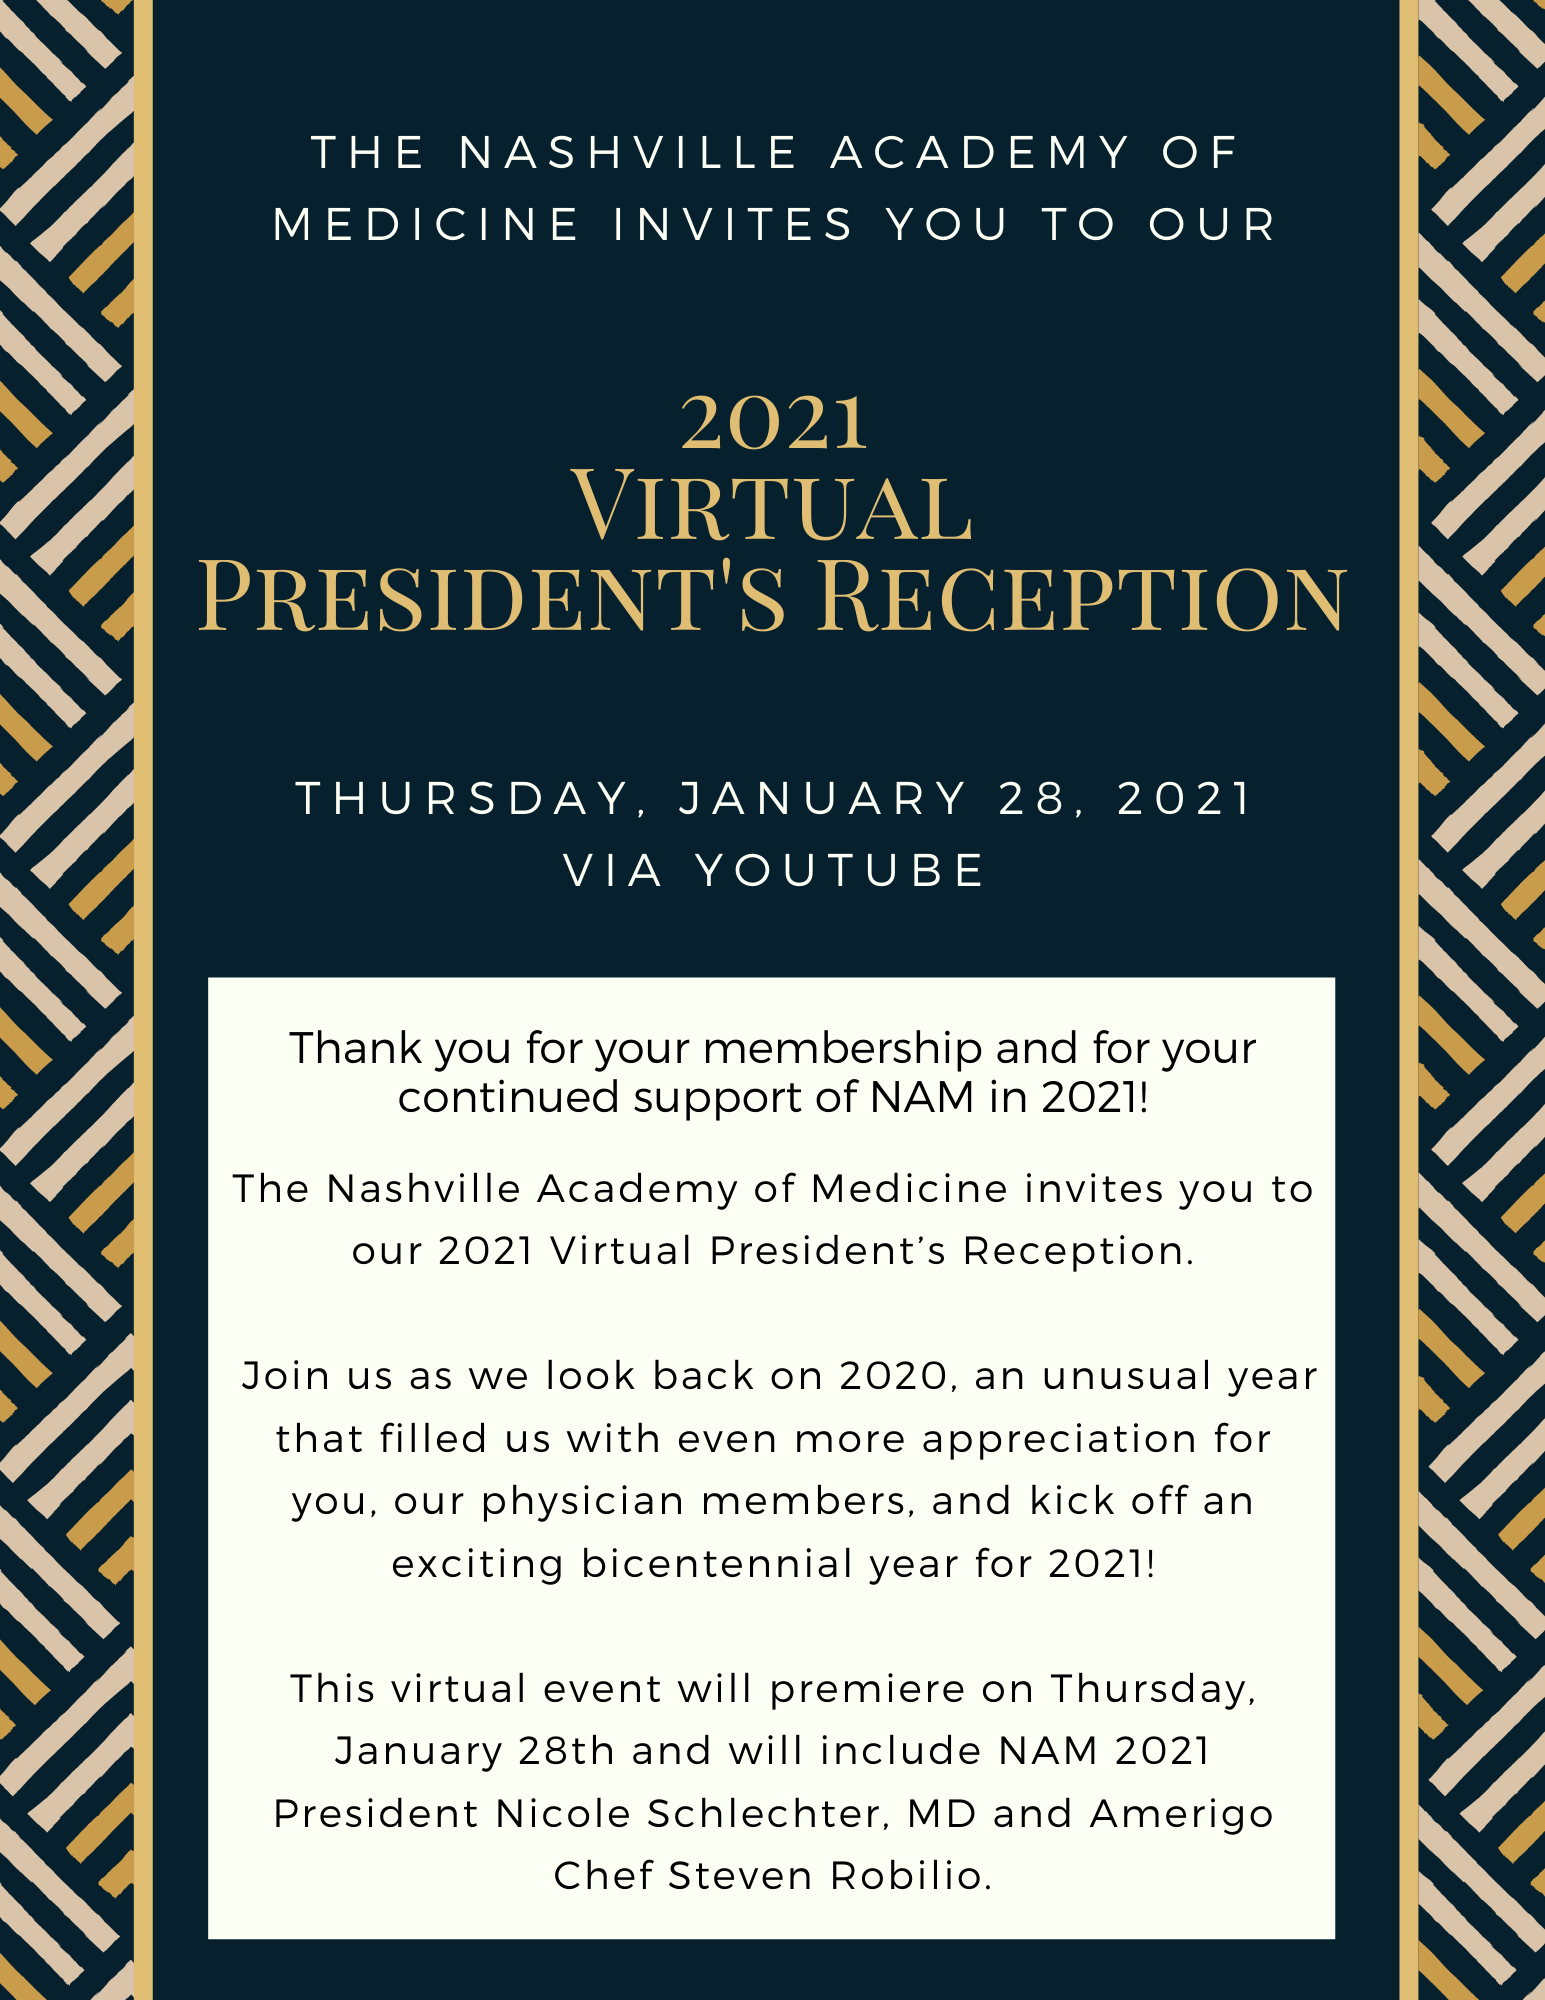 2021 President's Reception